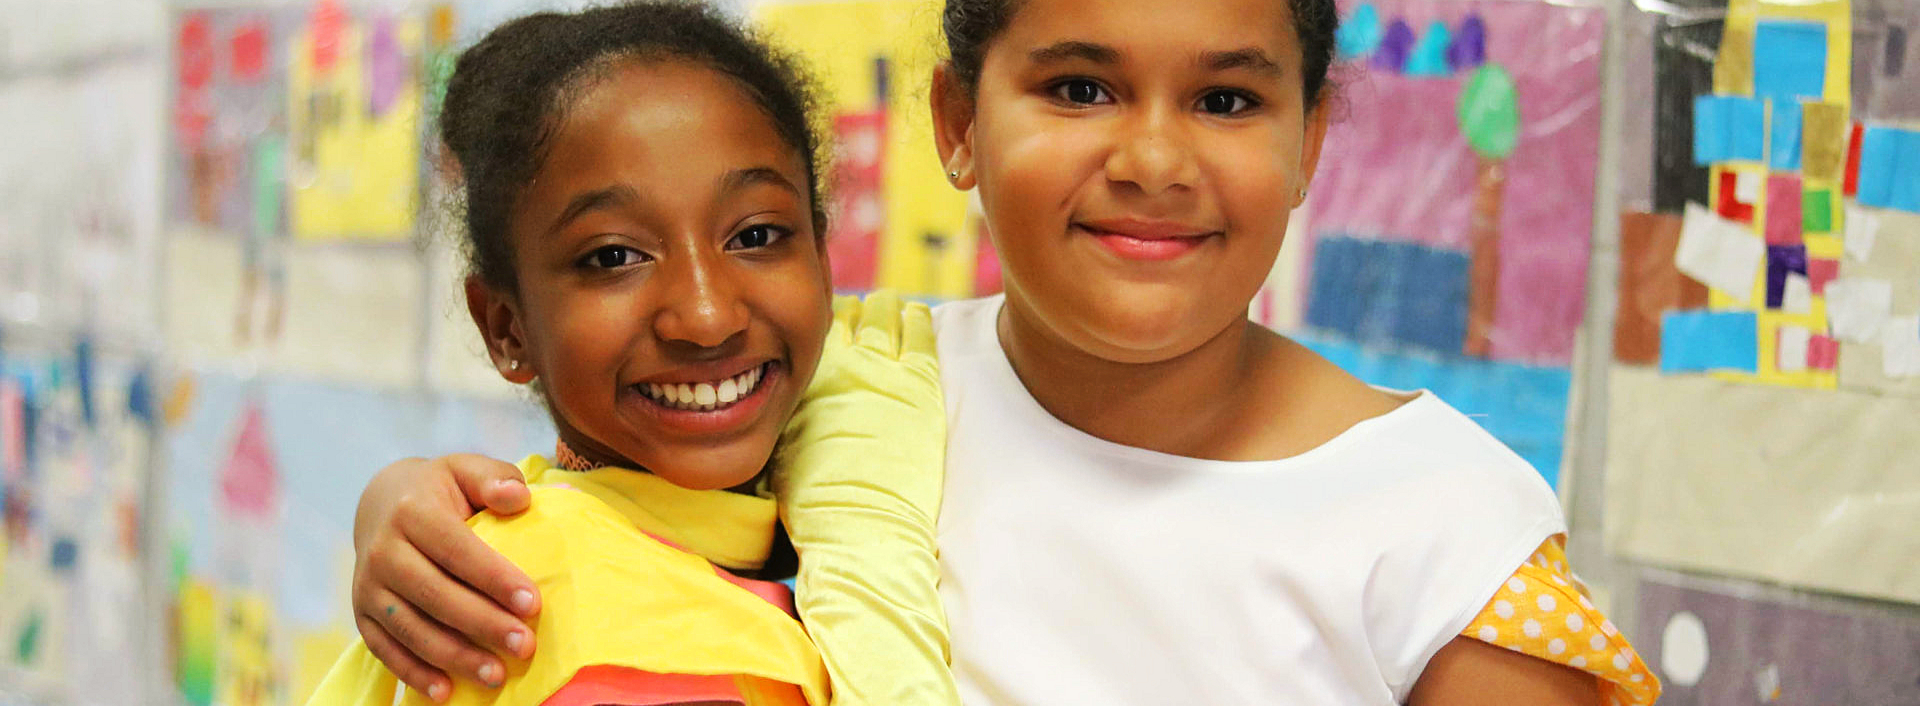 Two young girl smiling